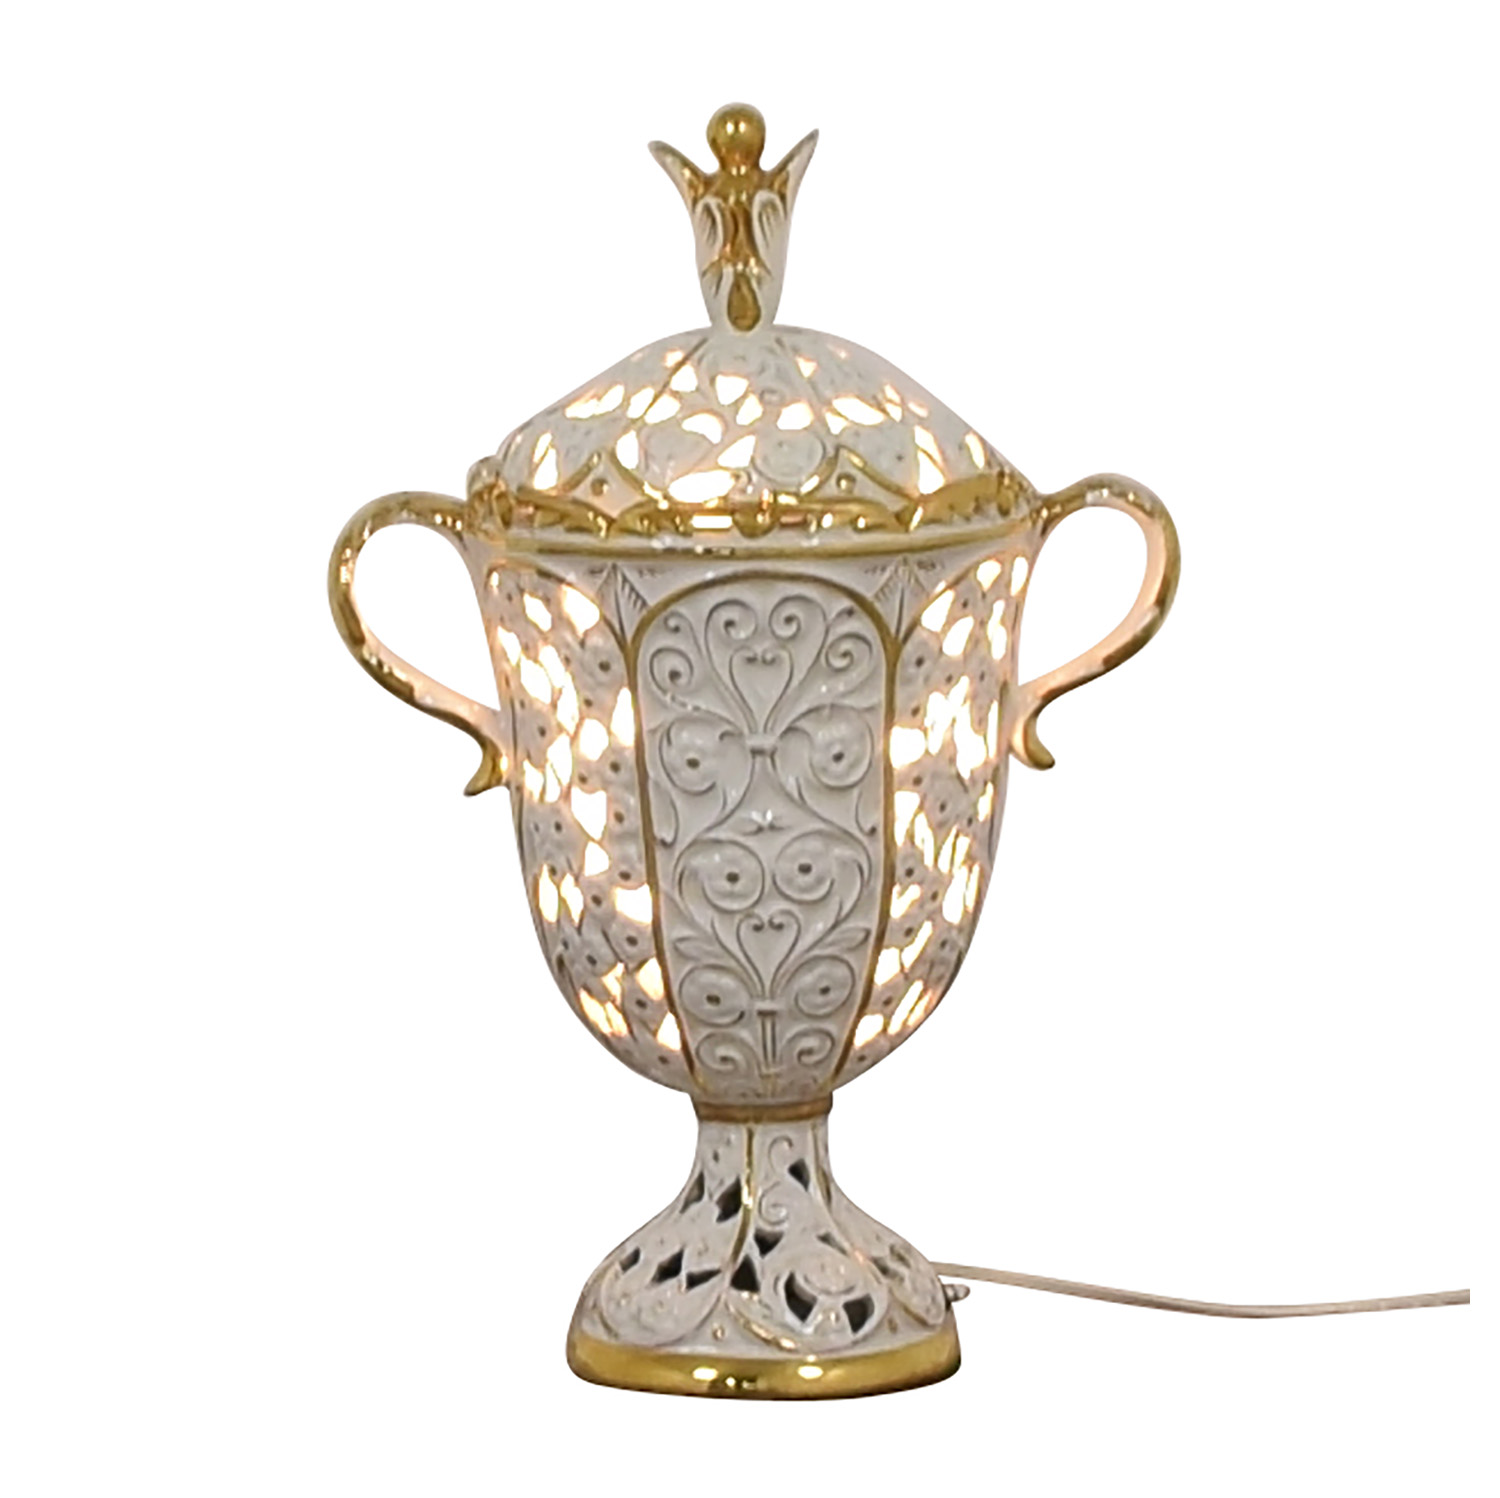 Antique White and Gold Porcelain Pierced Electric Lamp coupon